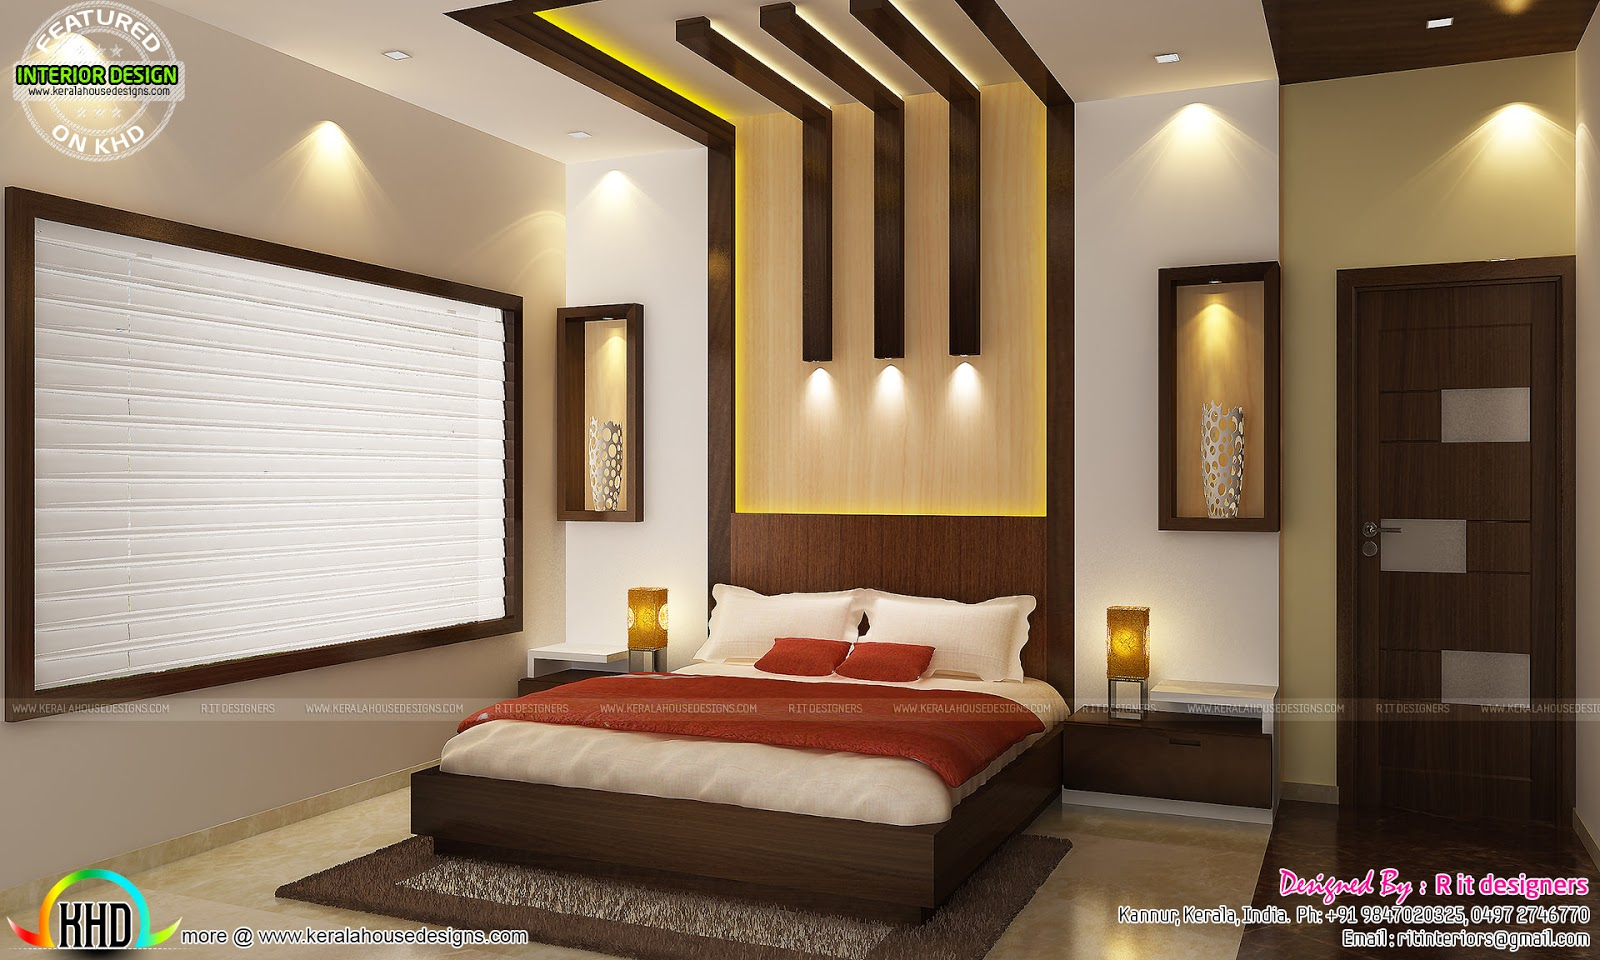 Kitchen living bedroom dining interior decor kerala for One bedroom house interior design